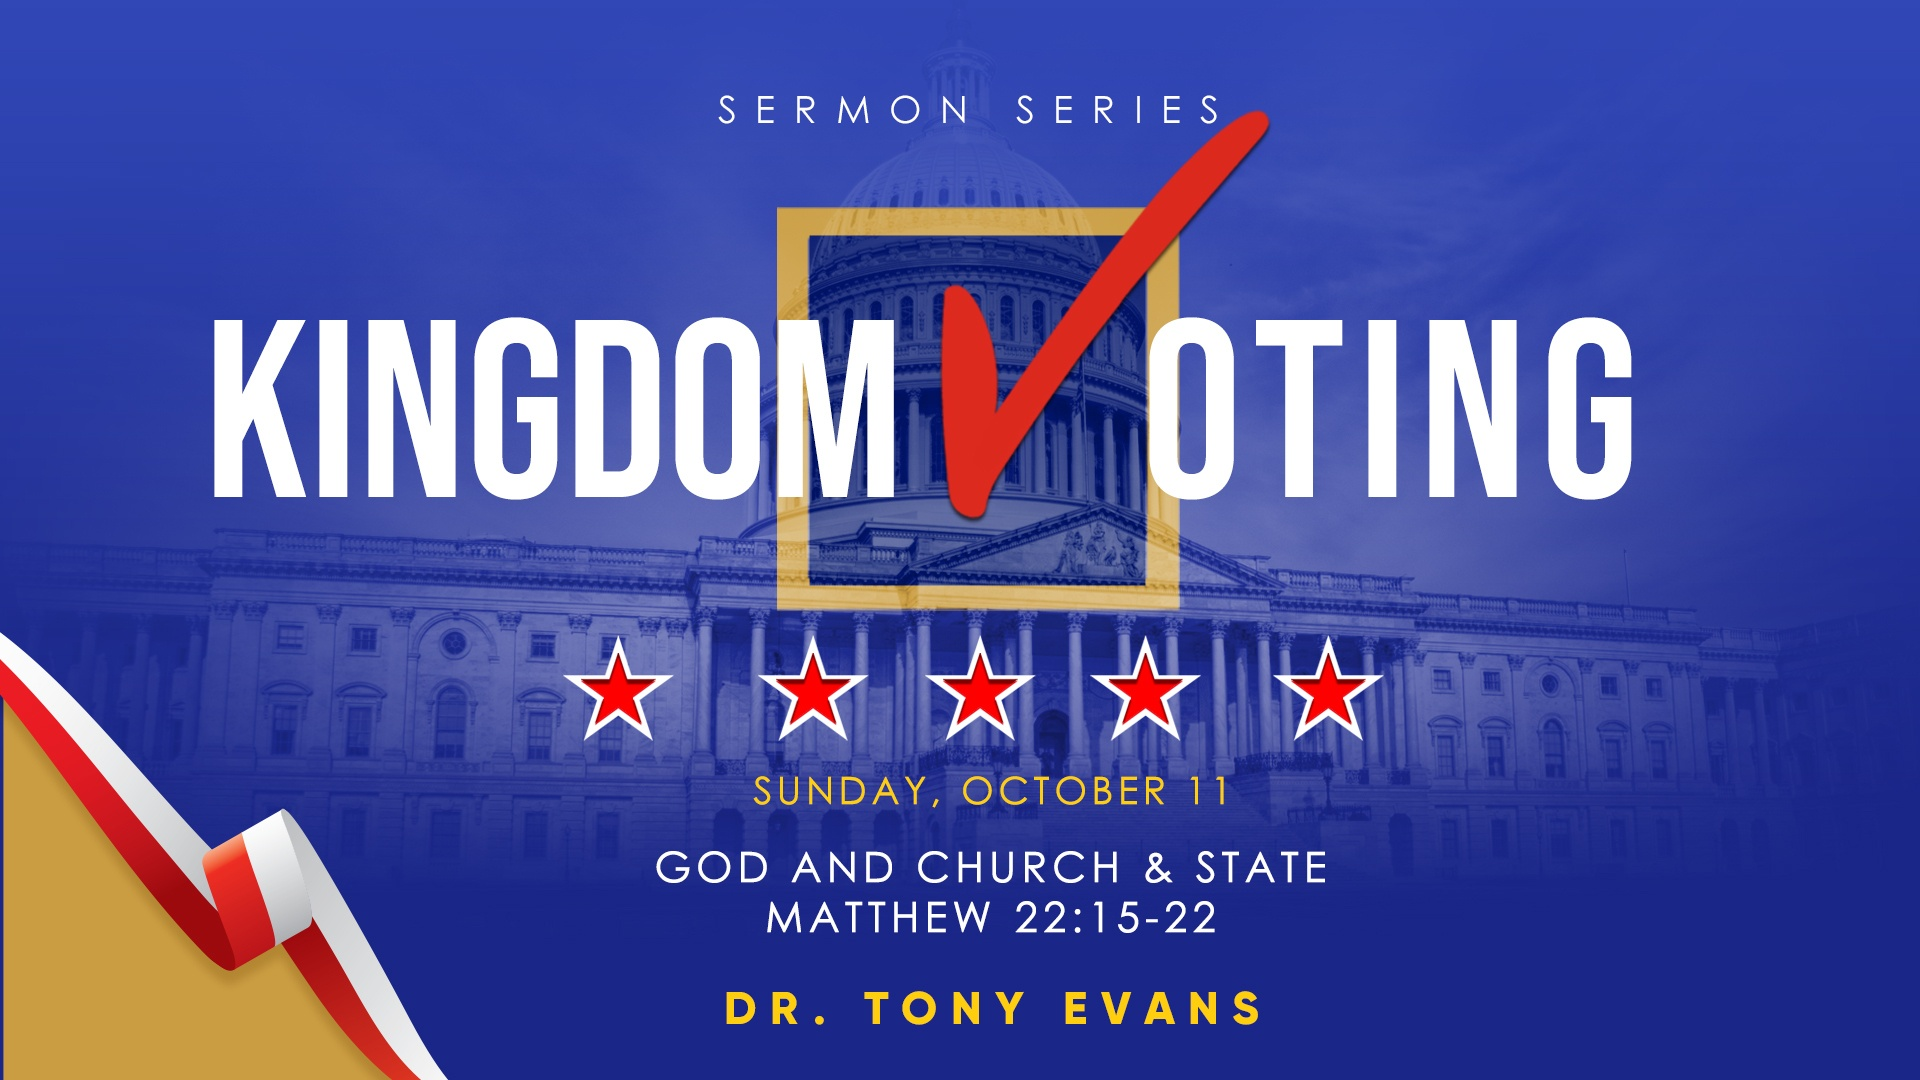 Kingdom Voting: God and Church & State by Dr. Tony Evans